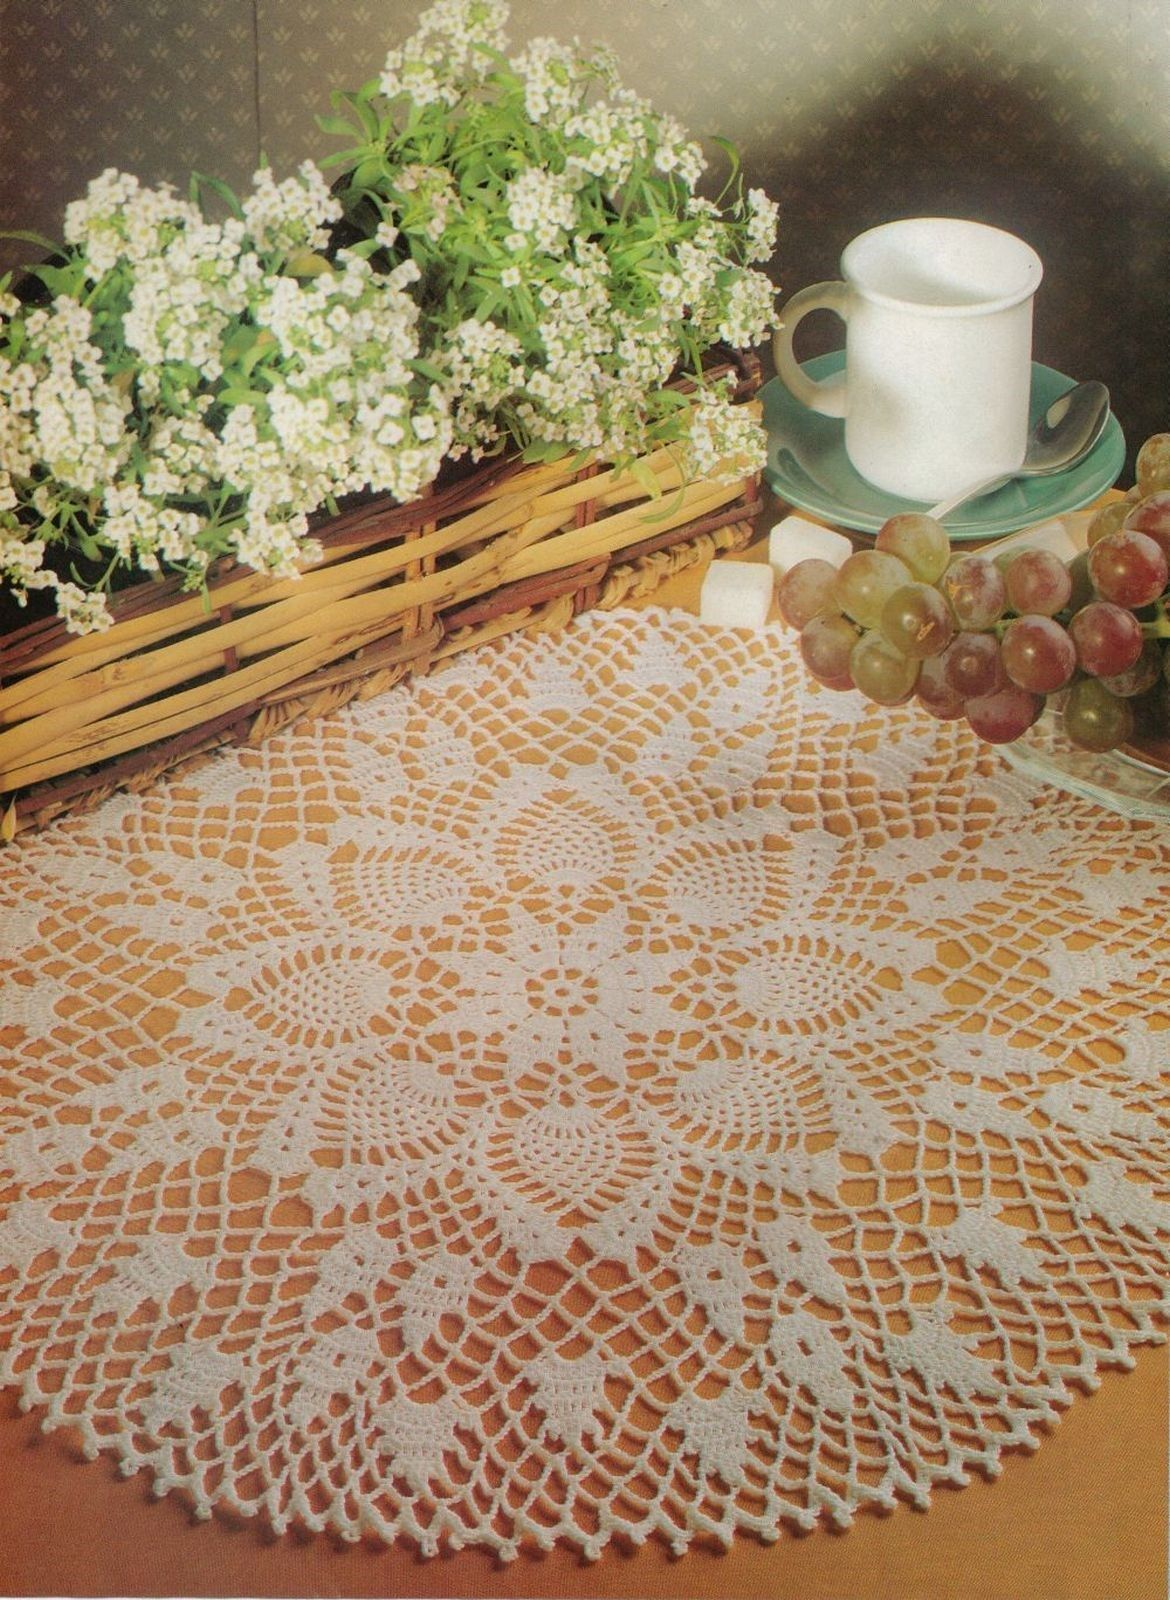 Primary image for PINEAPPLE ORANGE BLOSSOM YELLOW NARCISSUS PRIVATE OCCASION Crochet DOILY Pattern